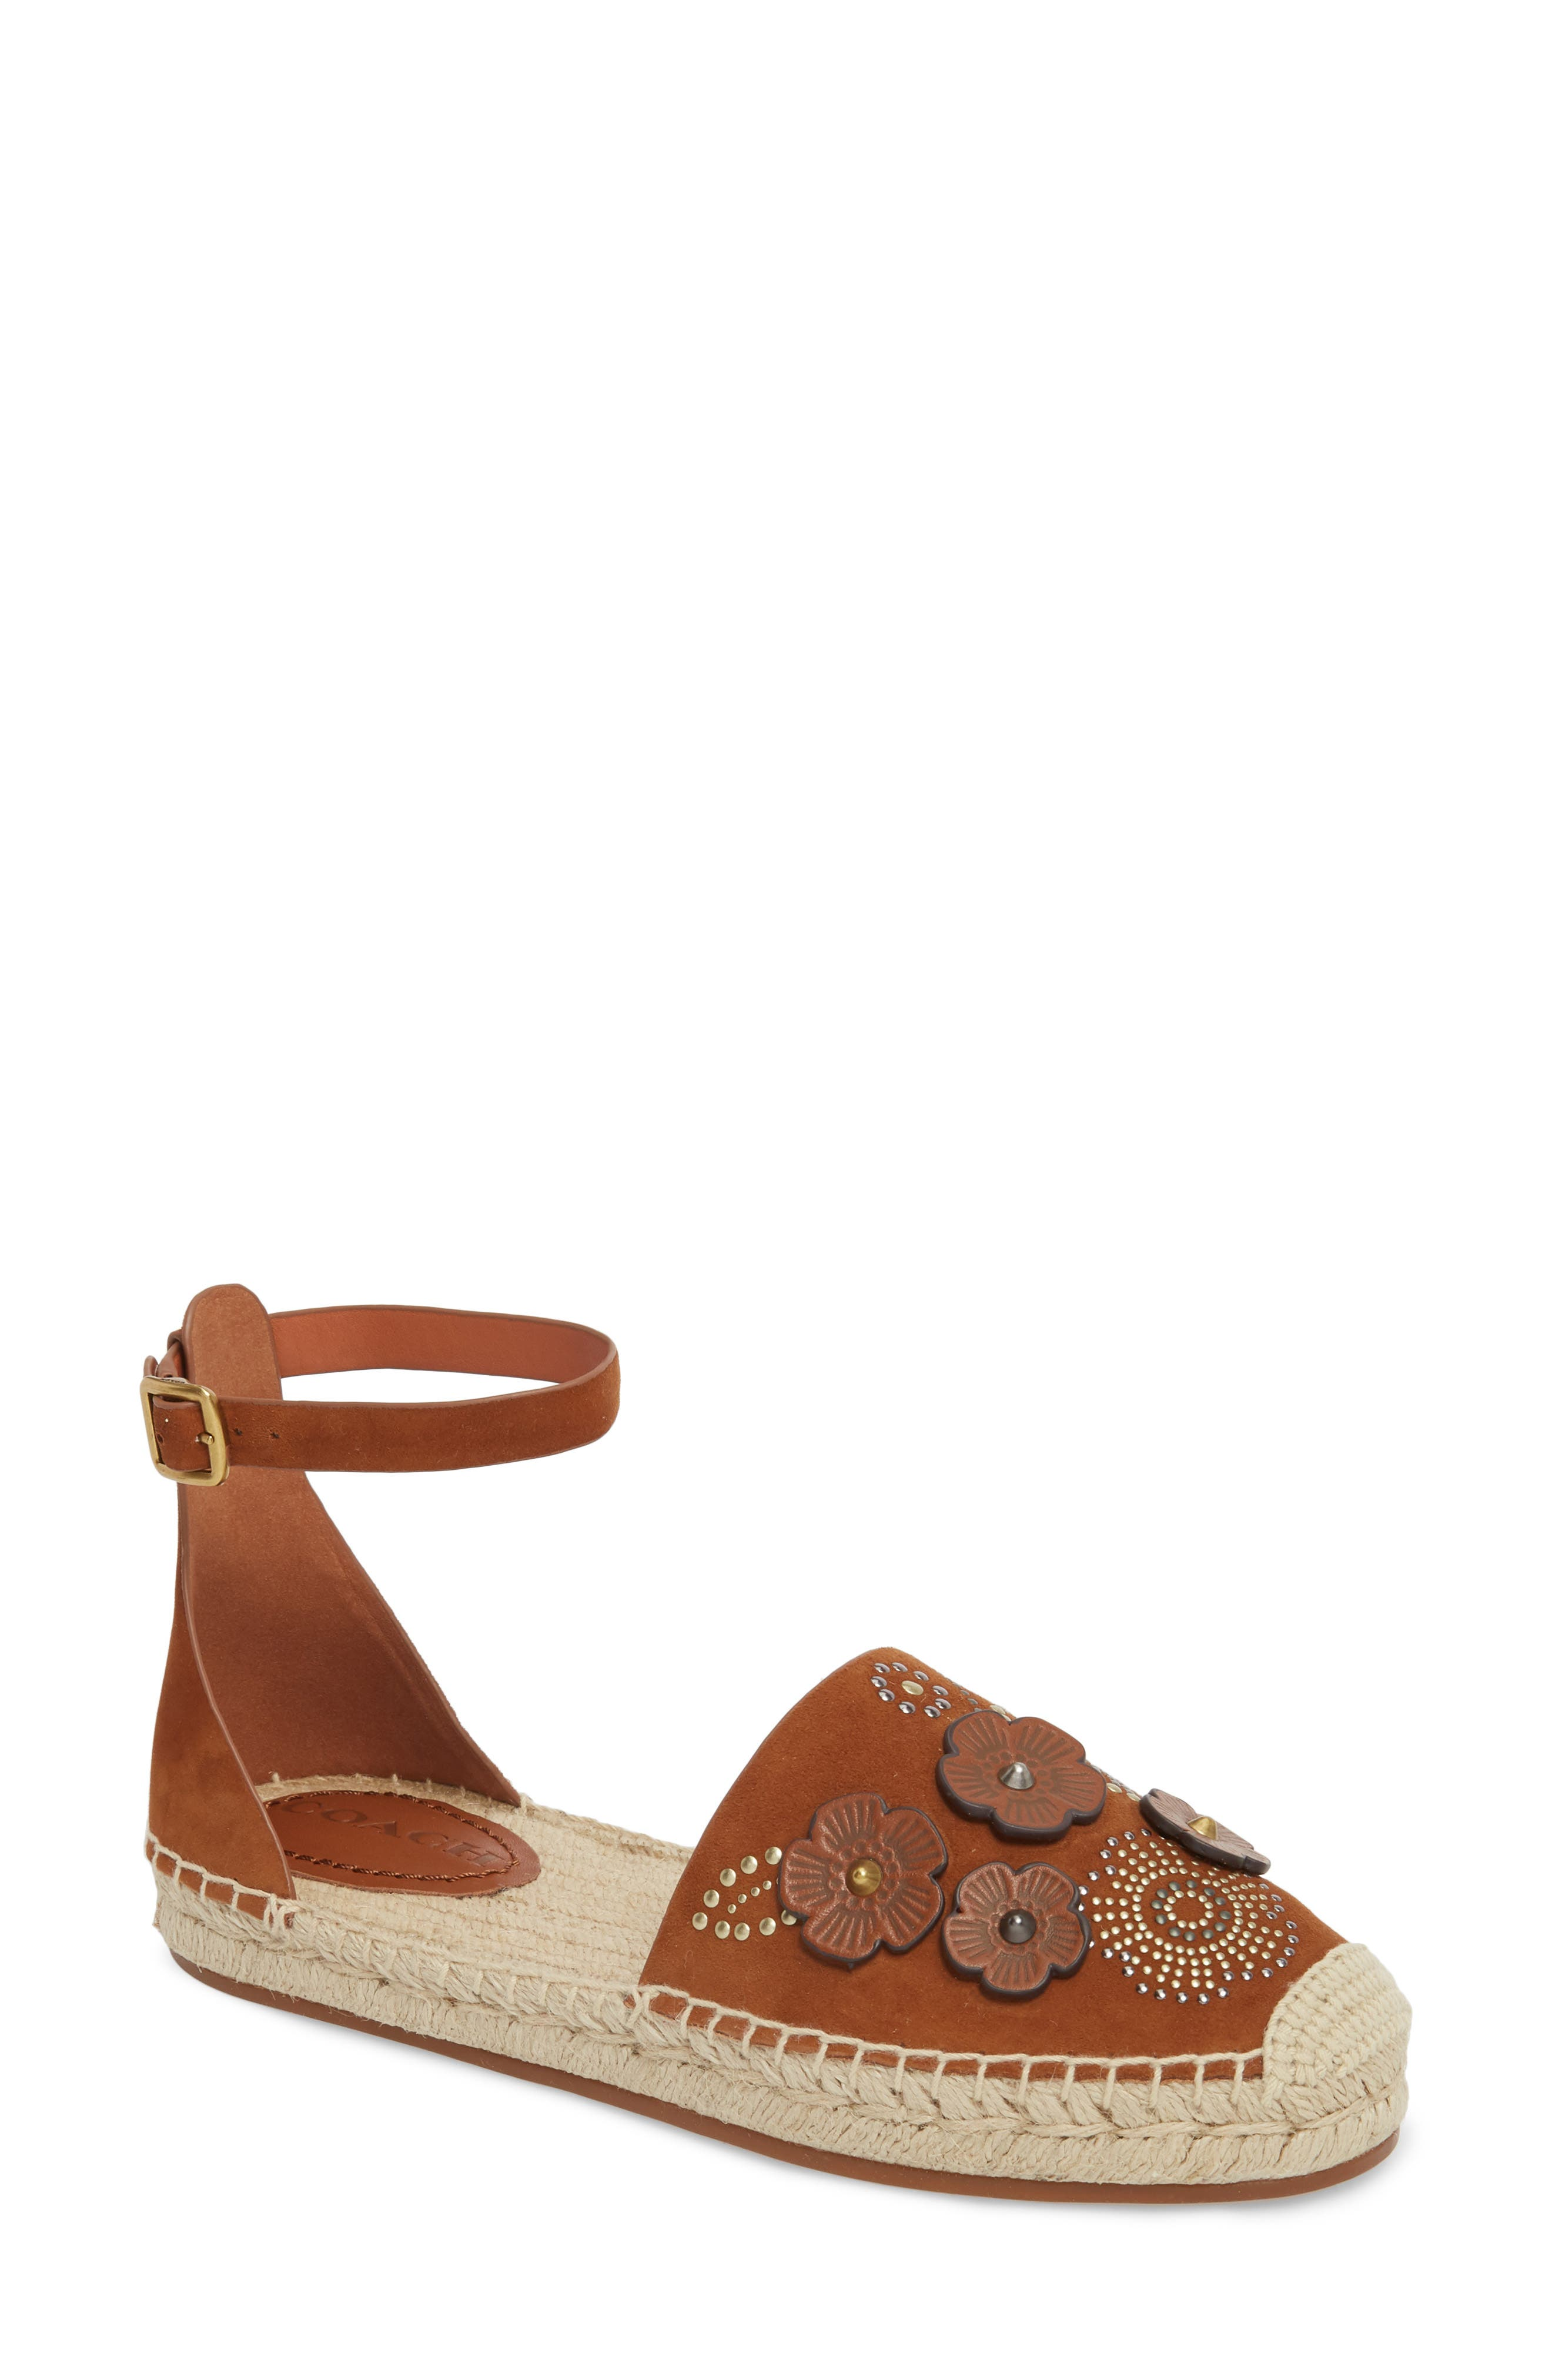 COACH Astor Ankle Strap Flat (Women)